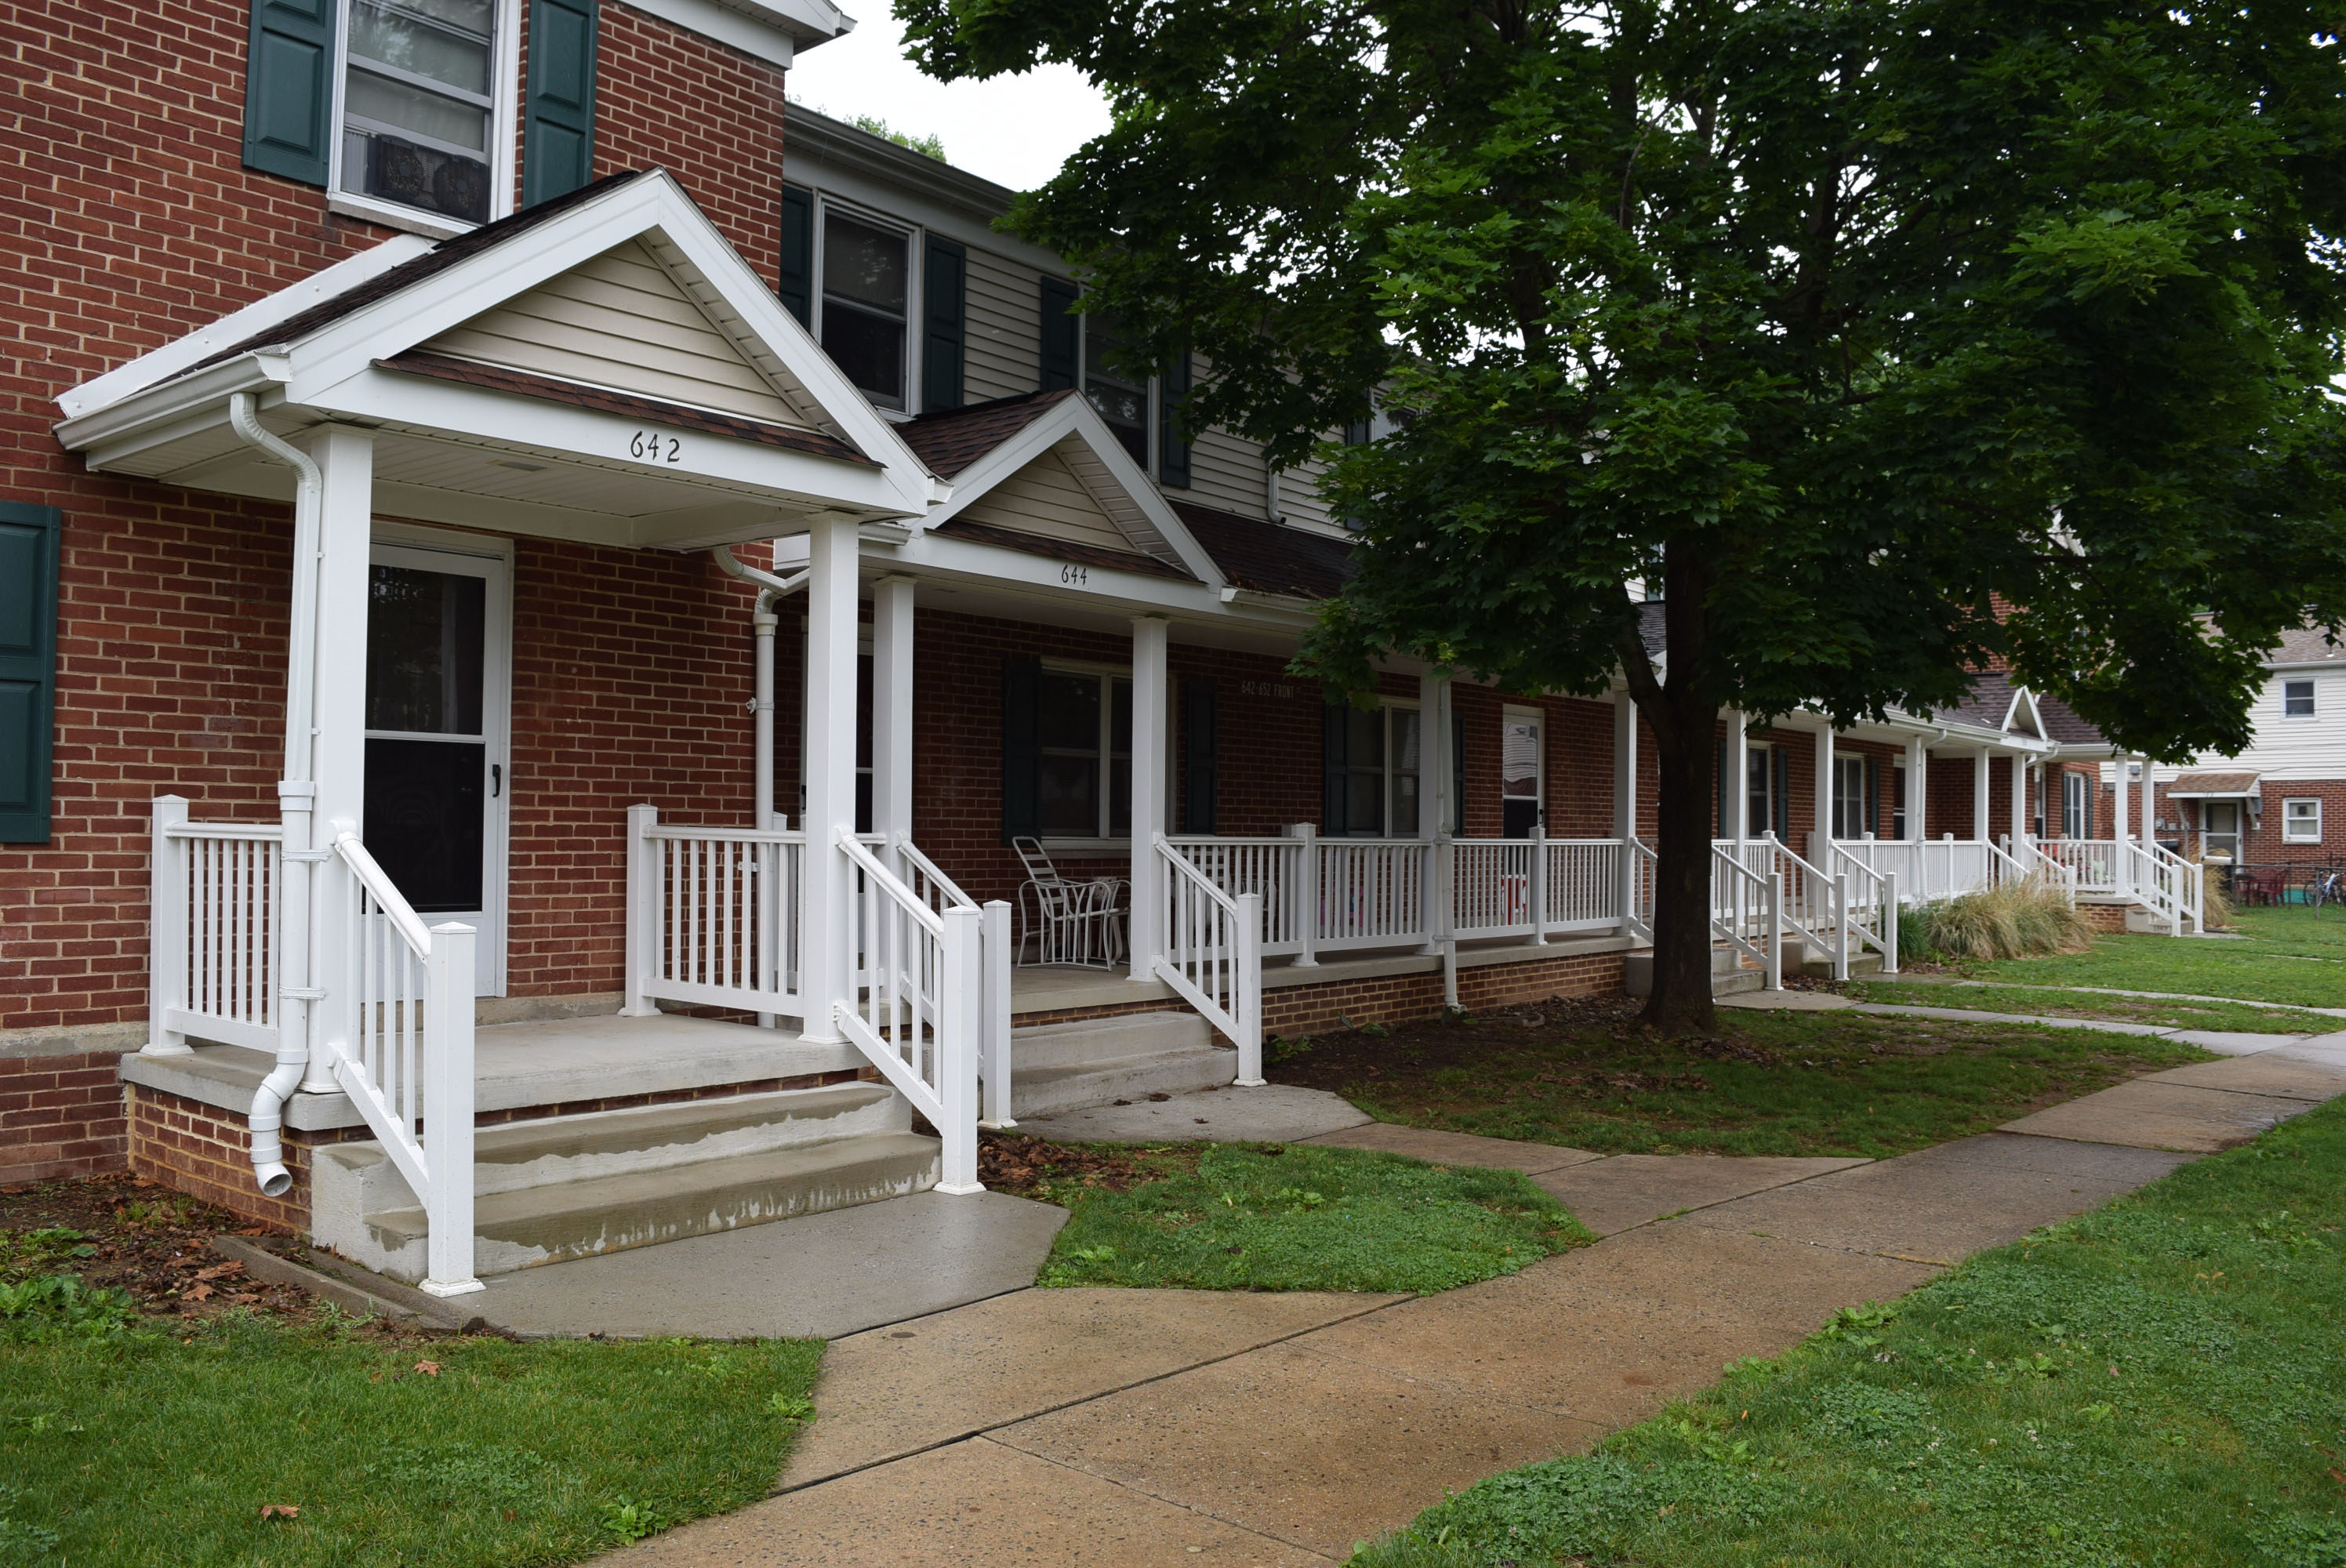 Housing Authority of the City of York - Public Residential